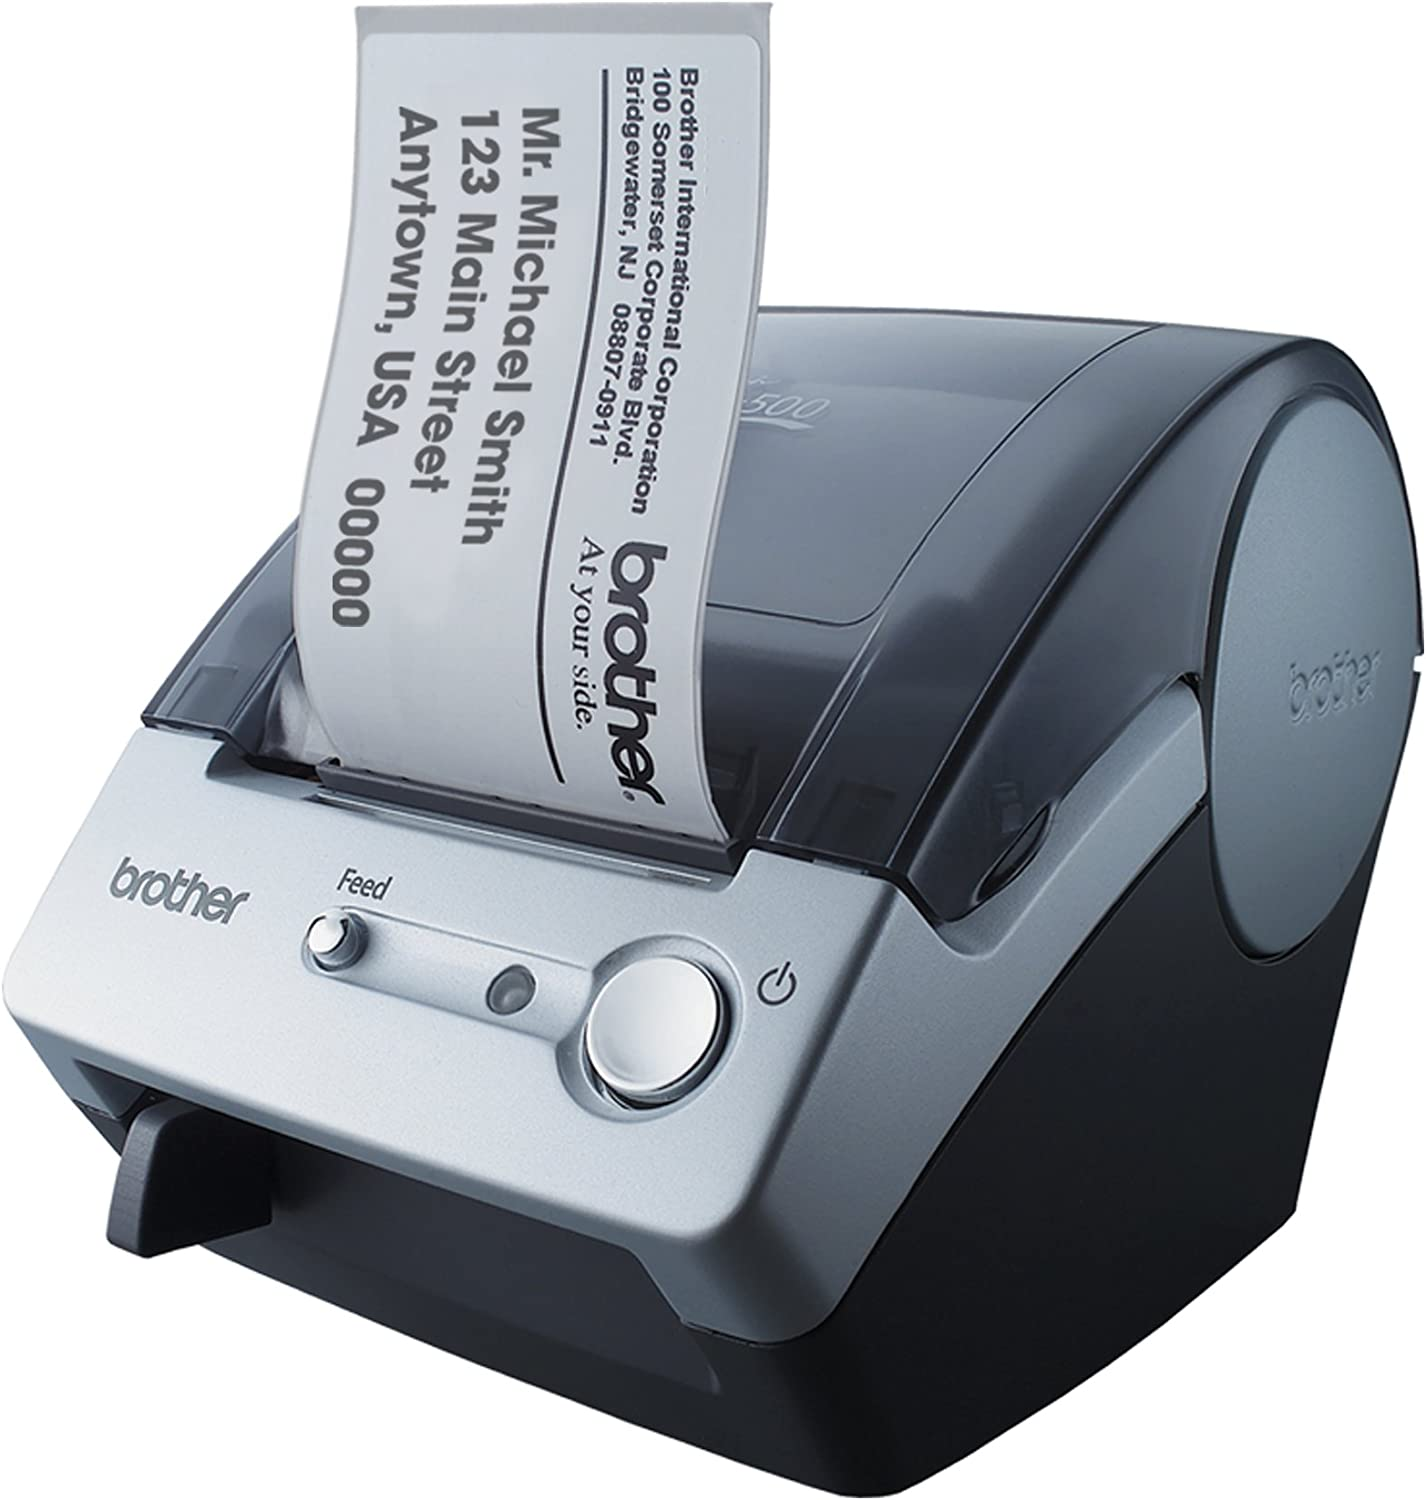 Brother P-Touch QL-500 Manual-Cut PC Label Printing System : Label Makers : Office Products